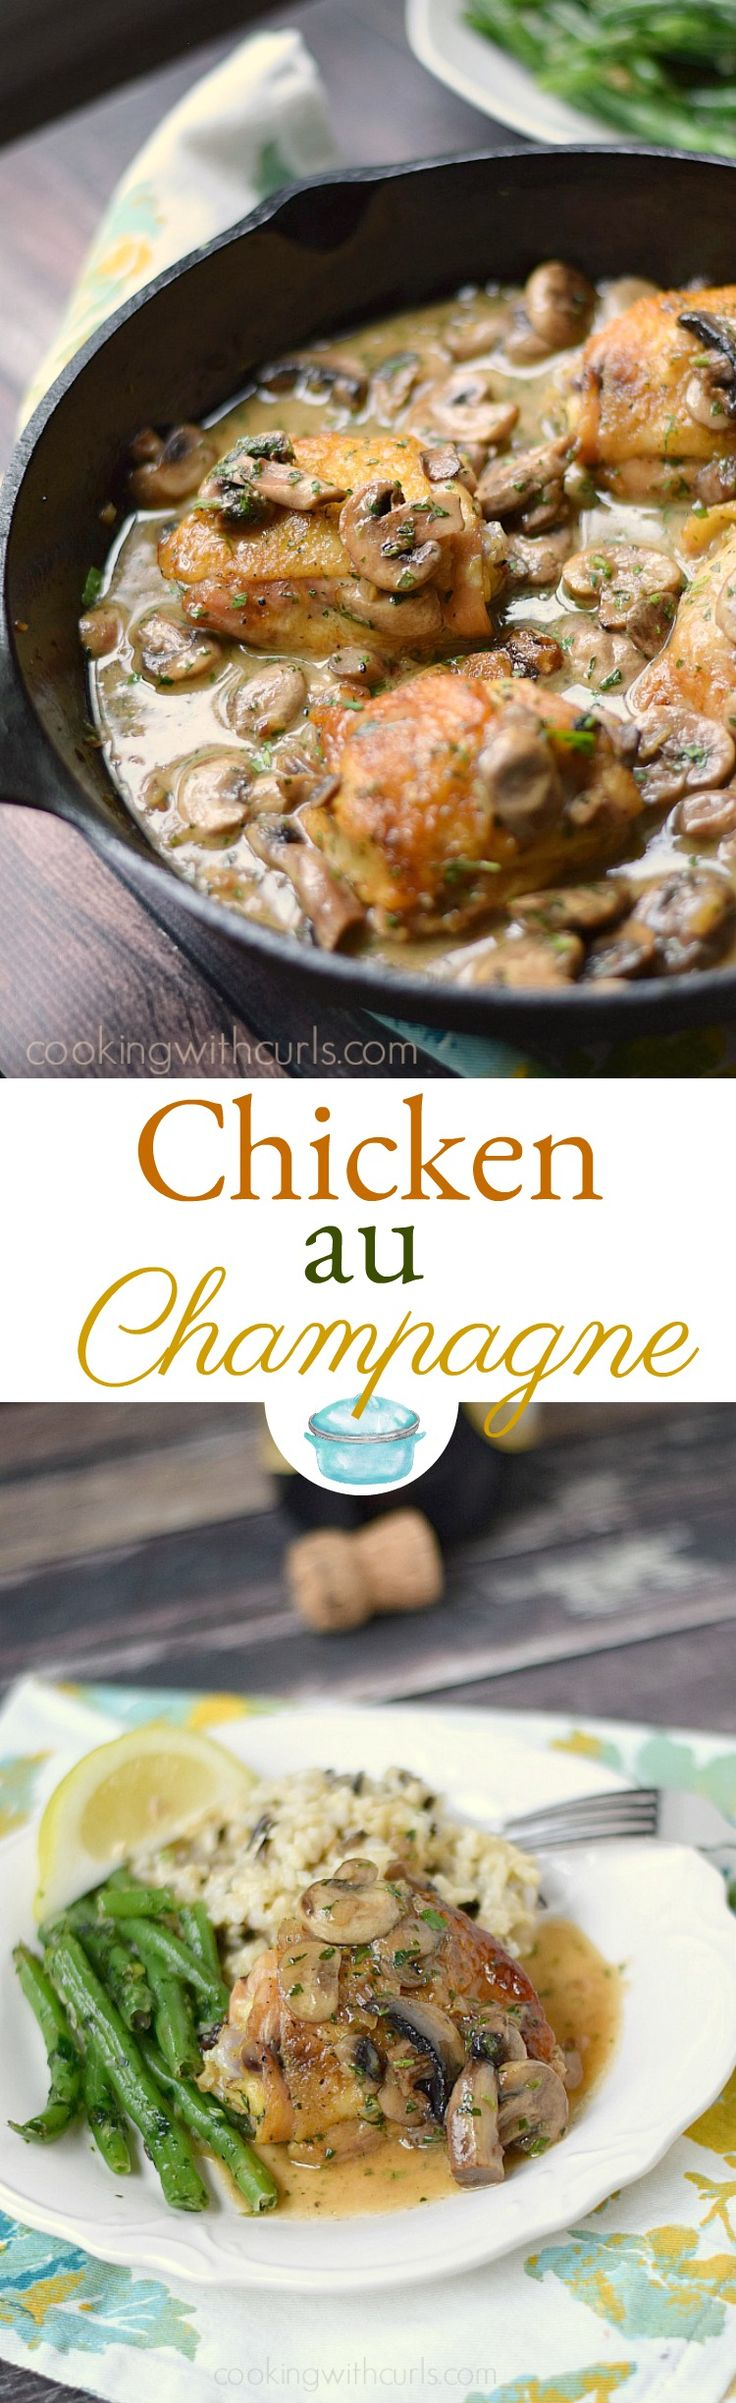 This rustic, yet elegant Chicken au Champagne is sure to please everyone around the dinner table! © COOKING WITH CURLS